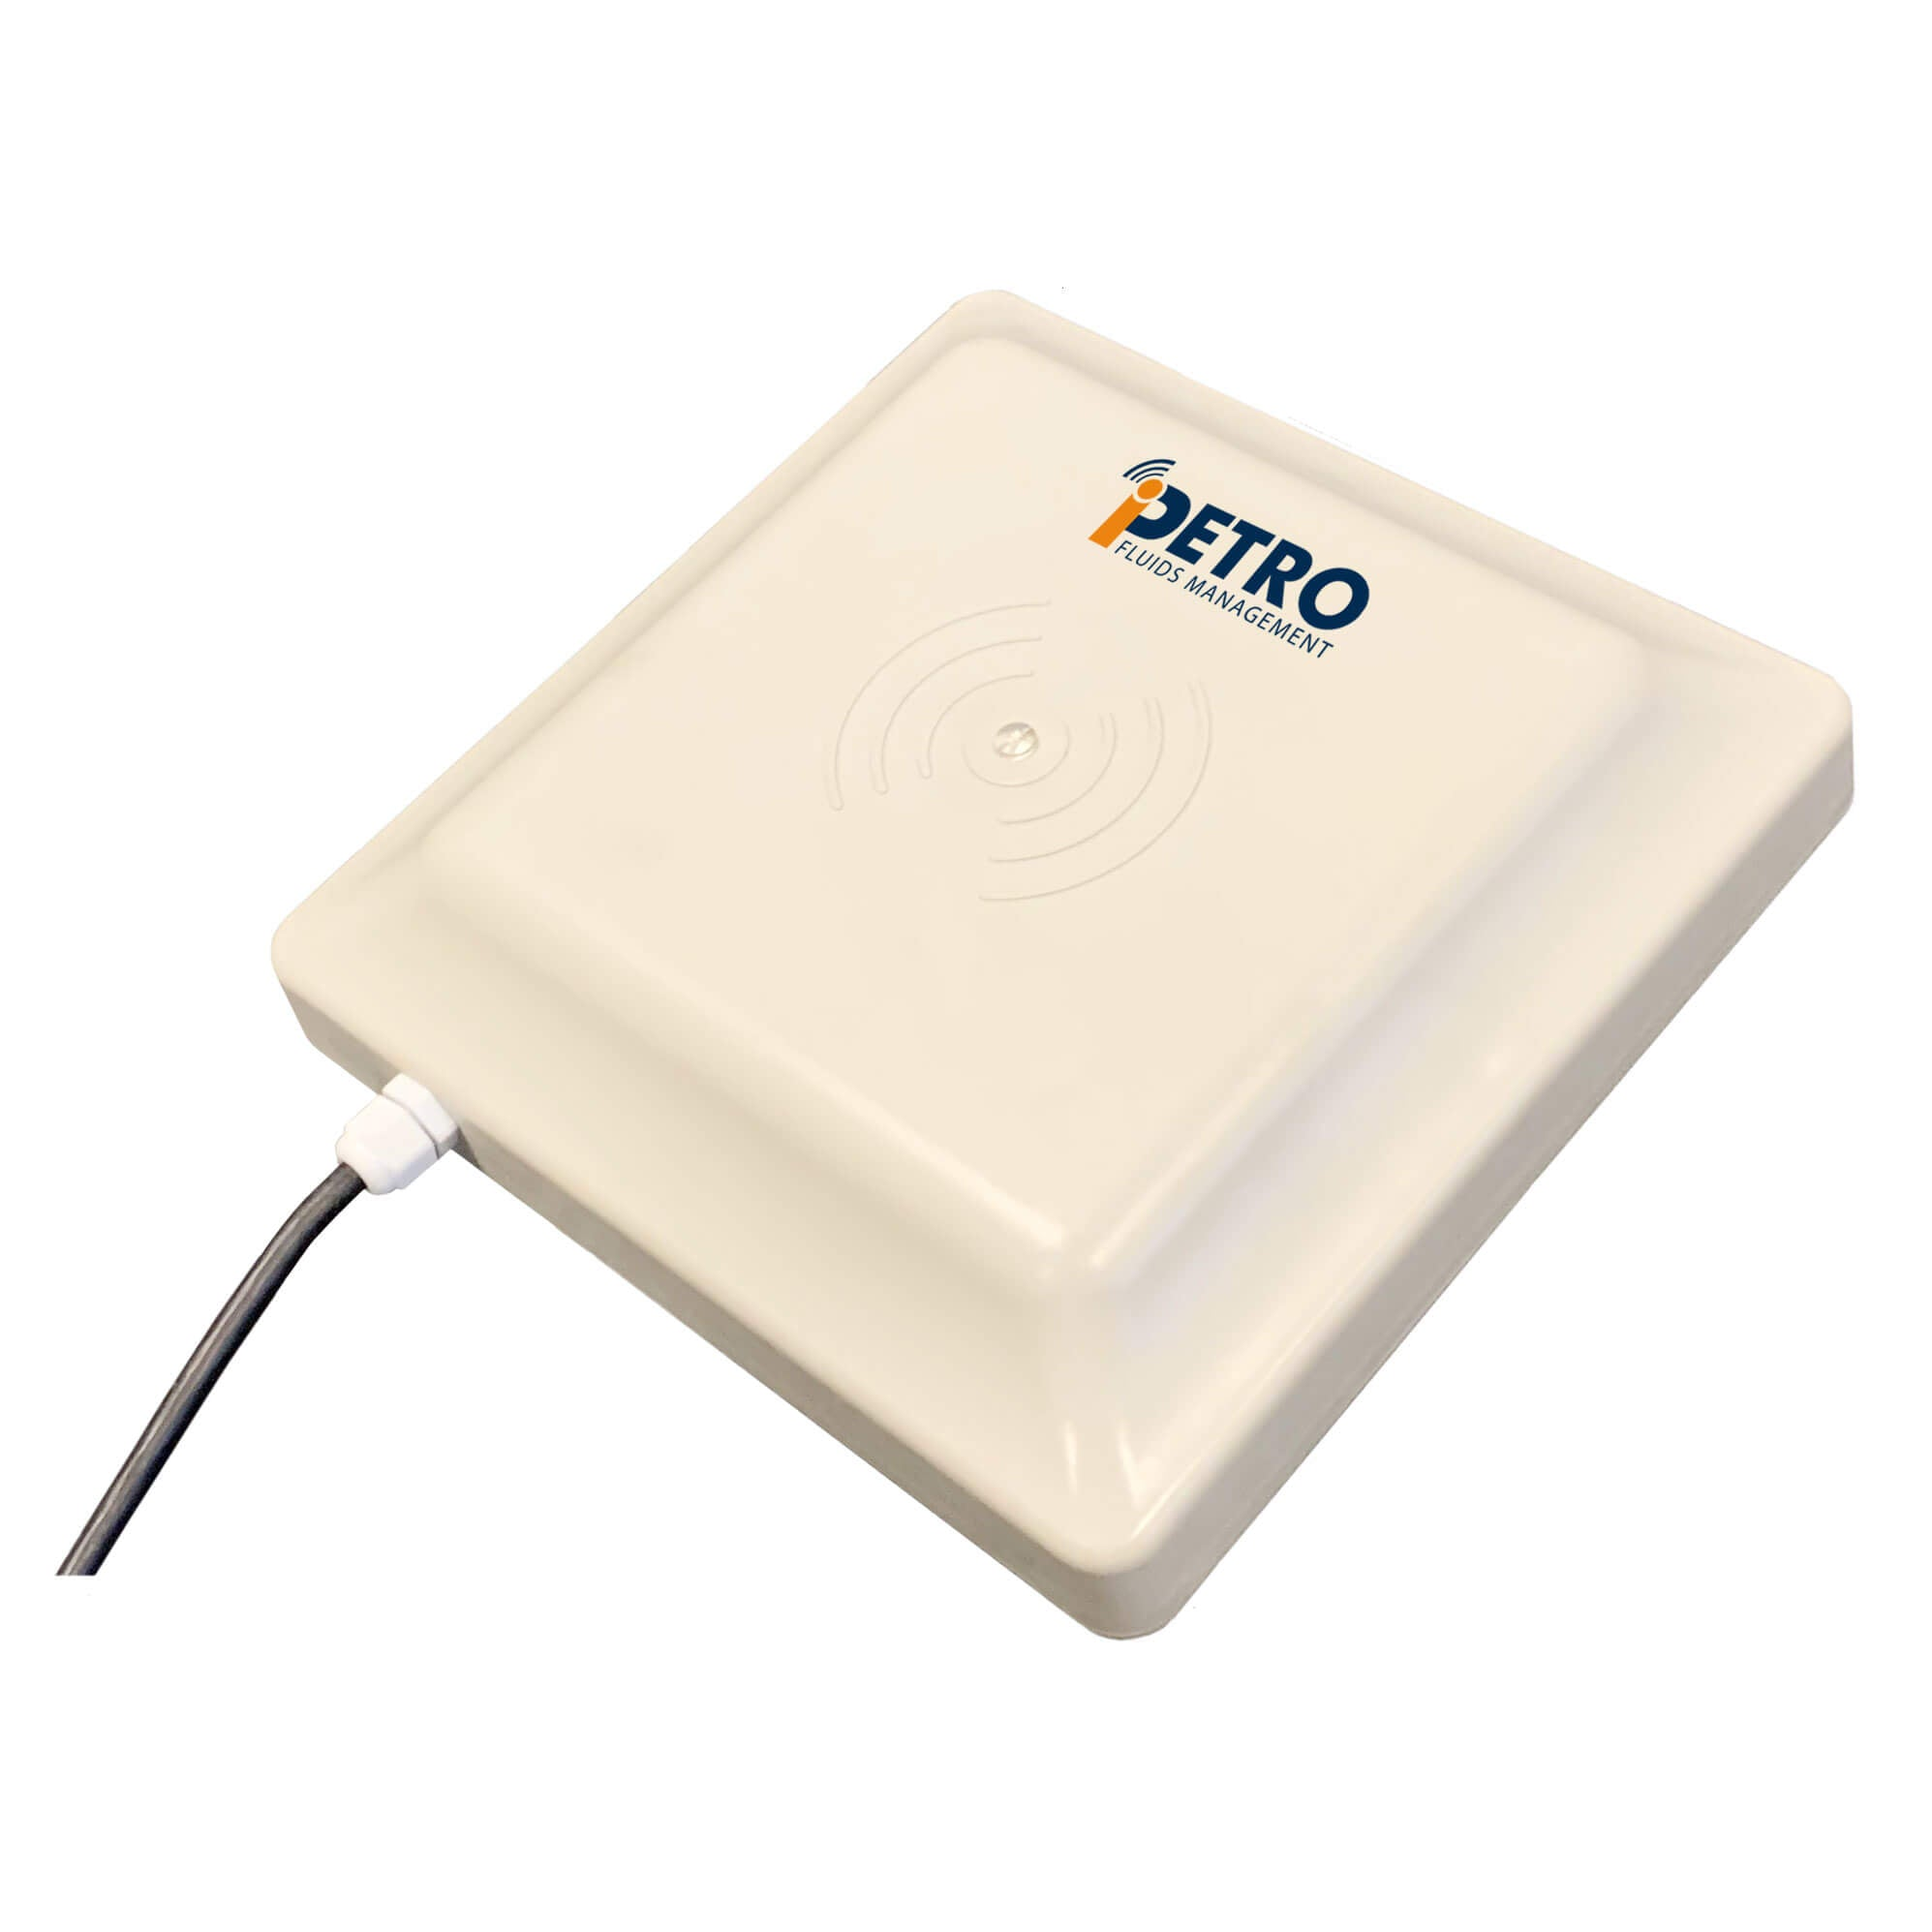 iPETRO AutoFuel Controller - Automatic Vehicle Authentication and Identification